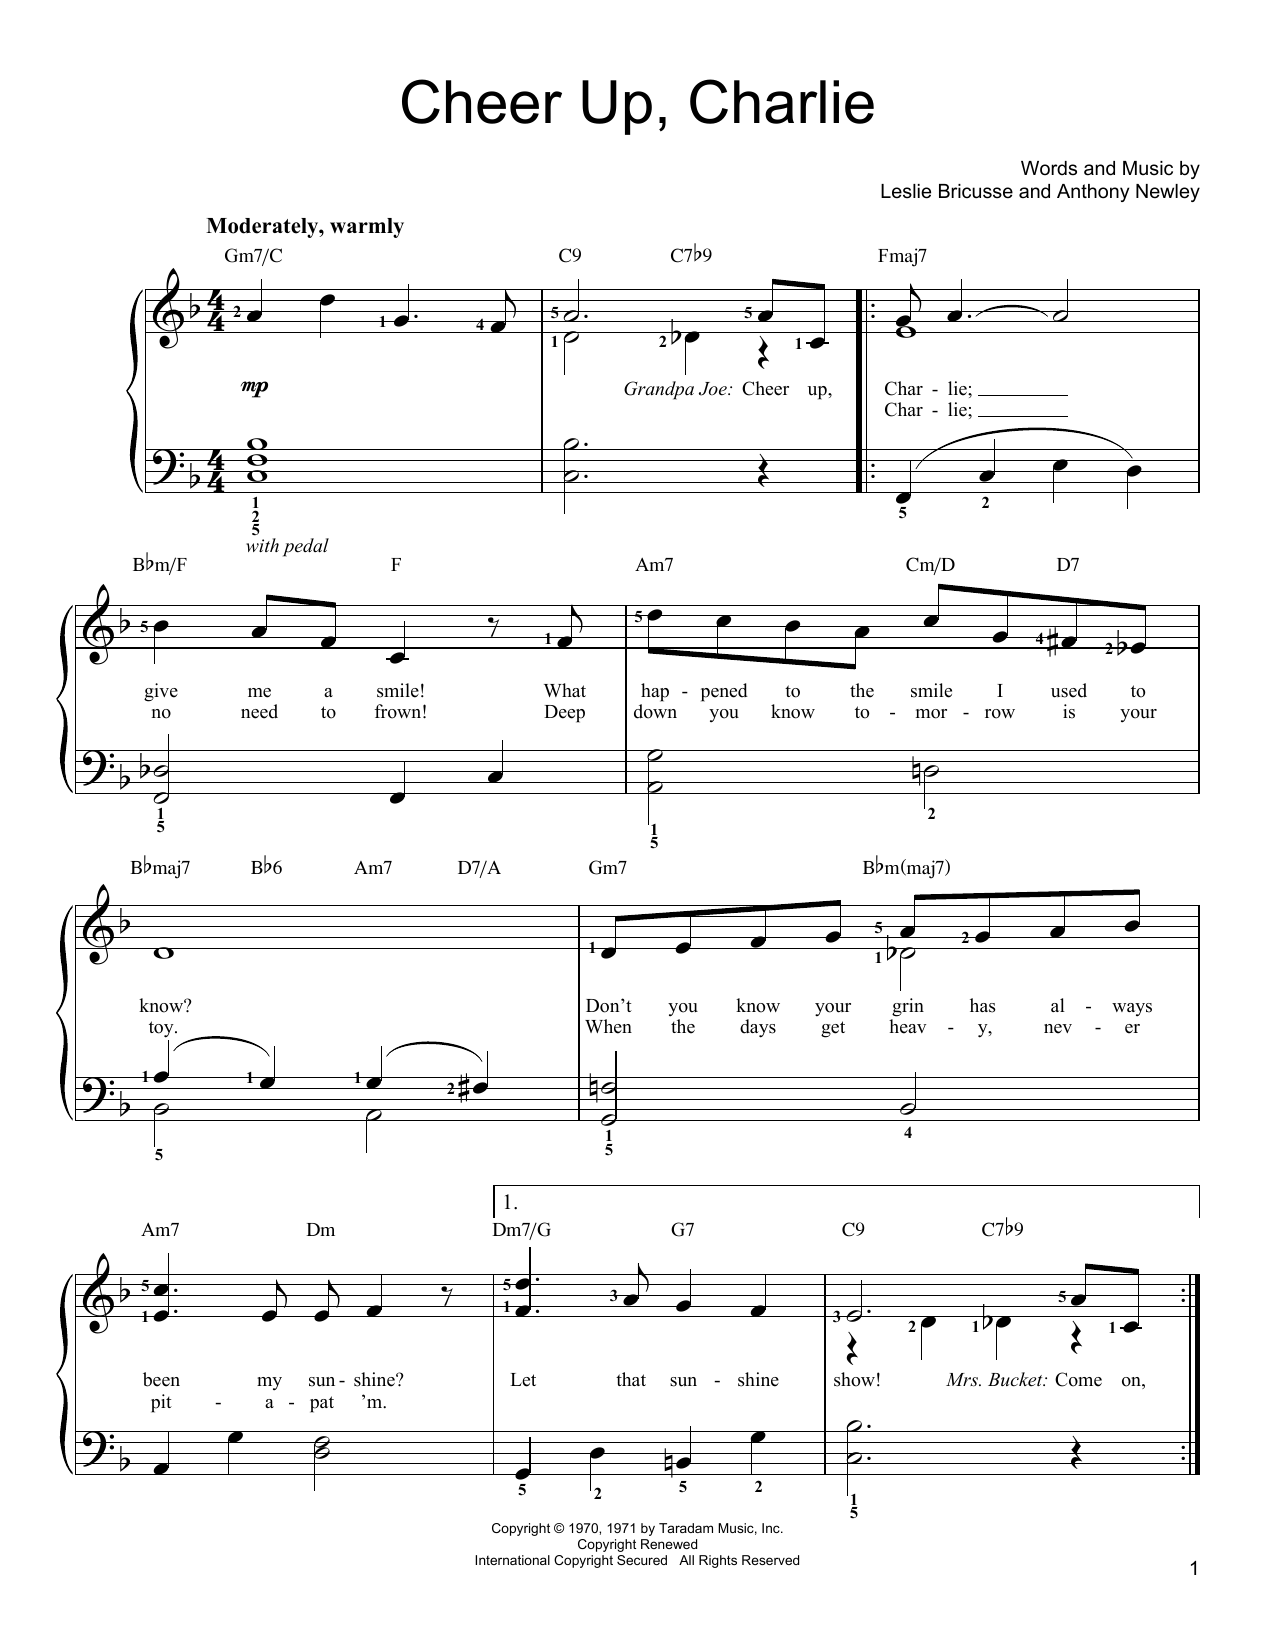 Cheer Up, Charlie Sheet Music